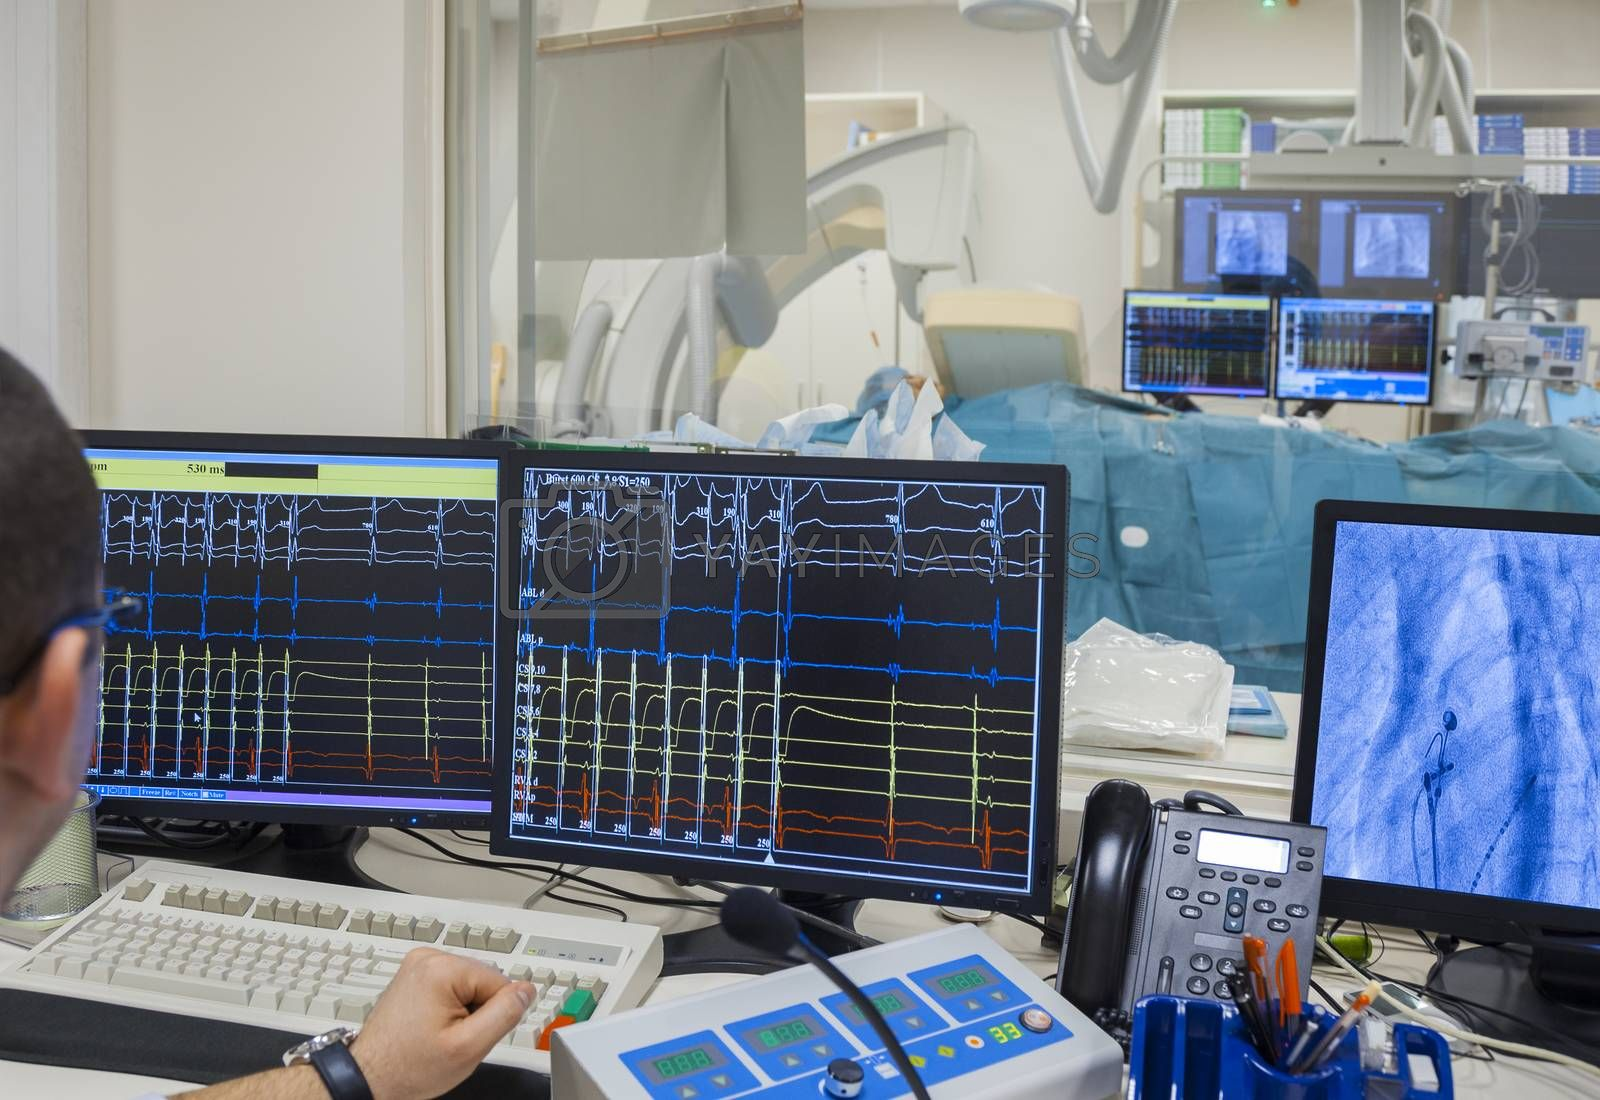 Monitors with heartbeat rate and x-ray image in modern hospital operating room.